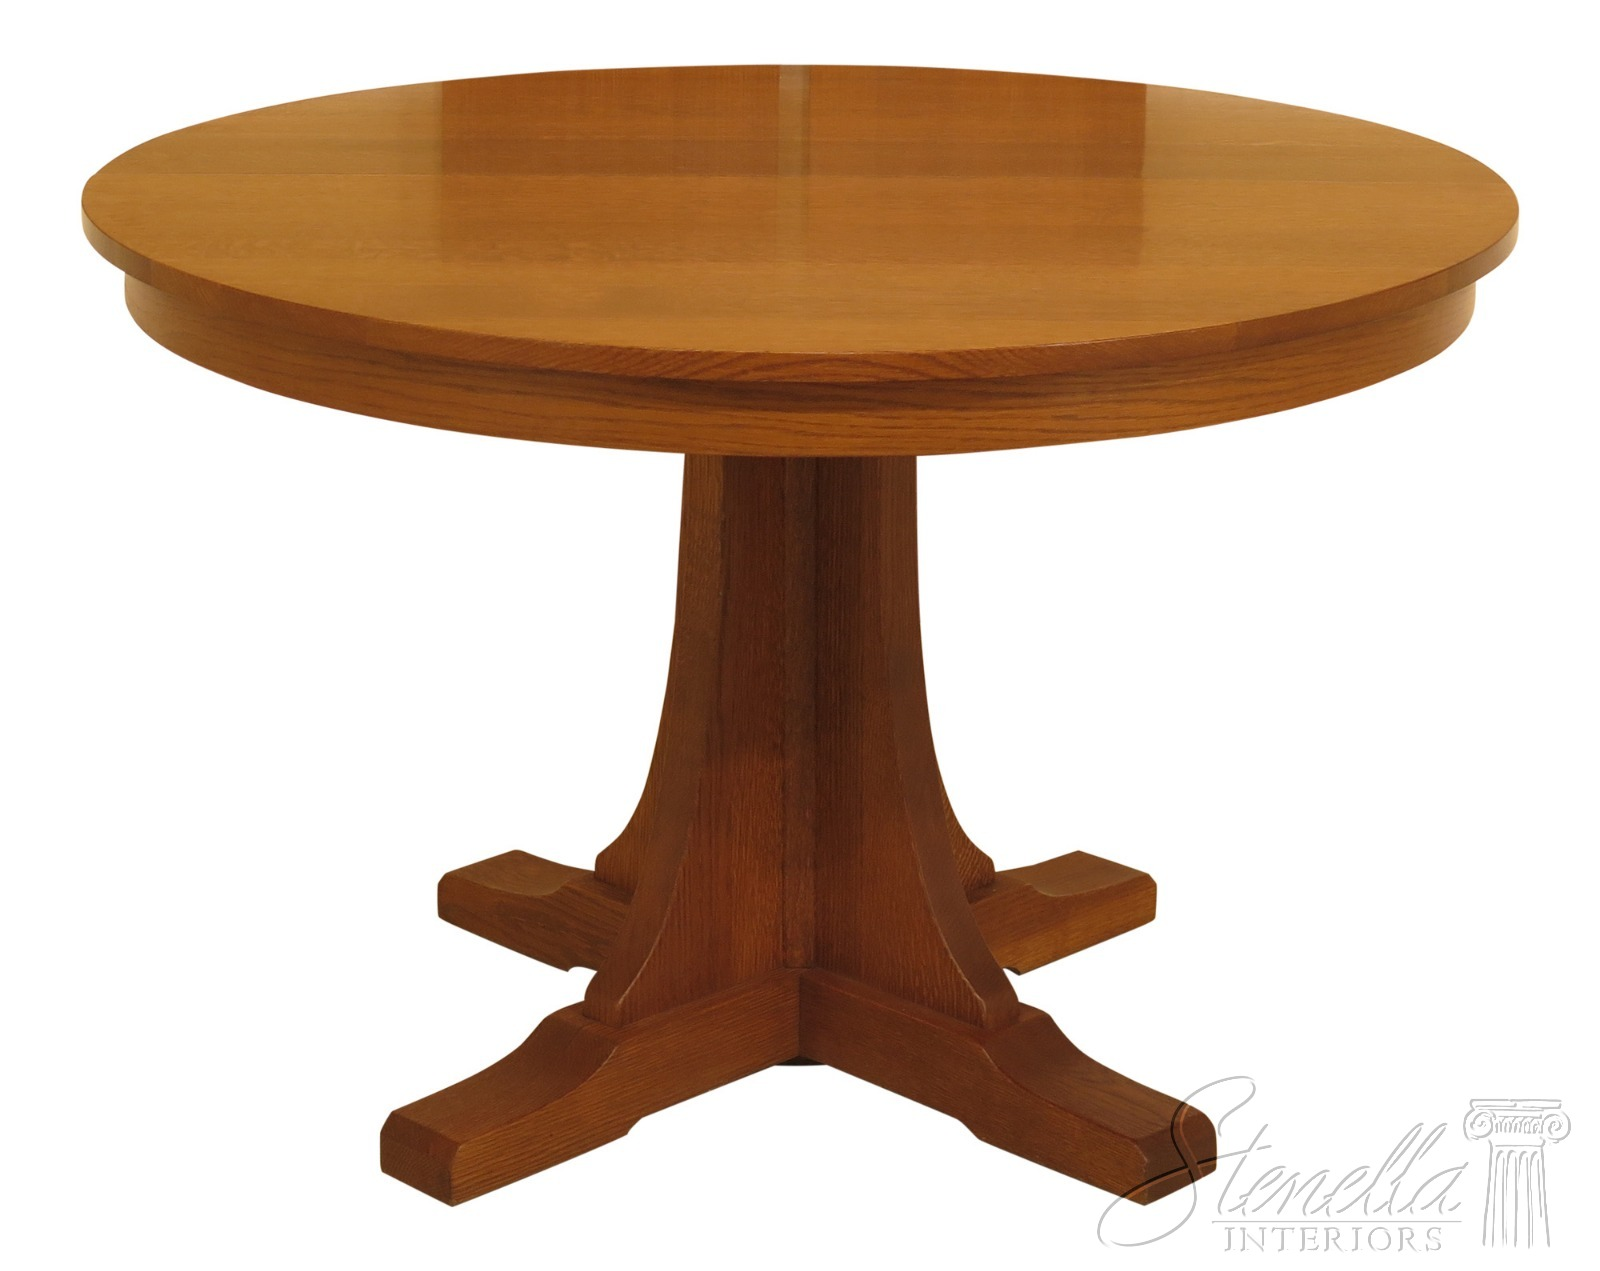 "Details about 30607EC: STICKLEY 46"" Round Mission Oak Dining Room Table"